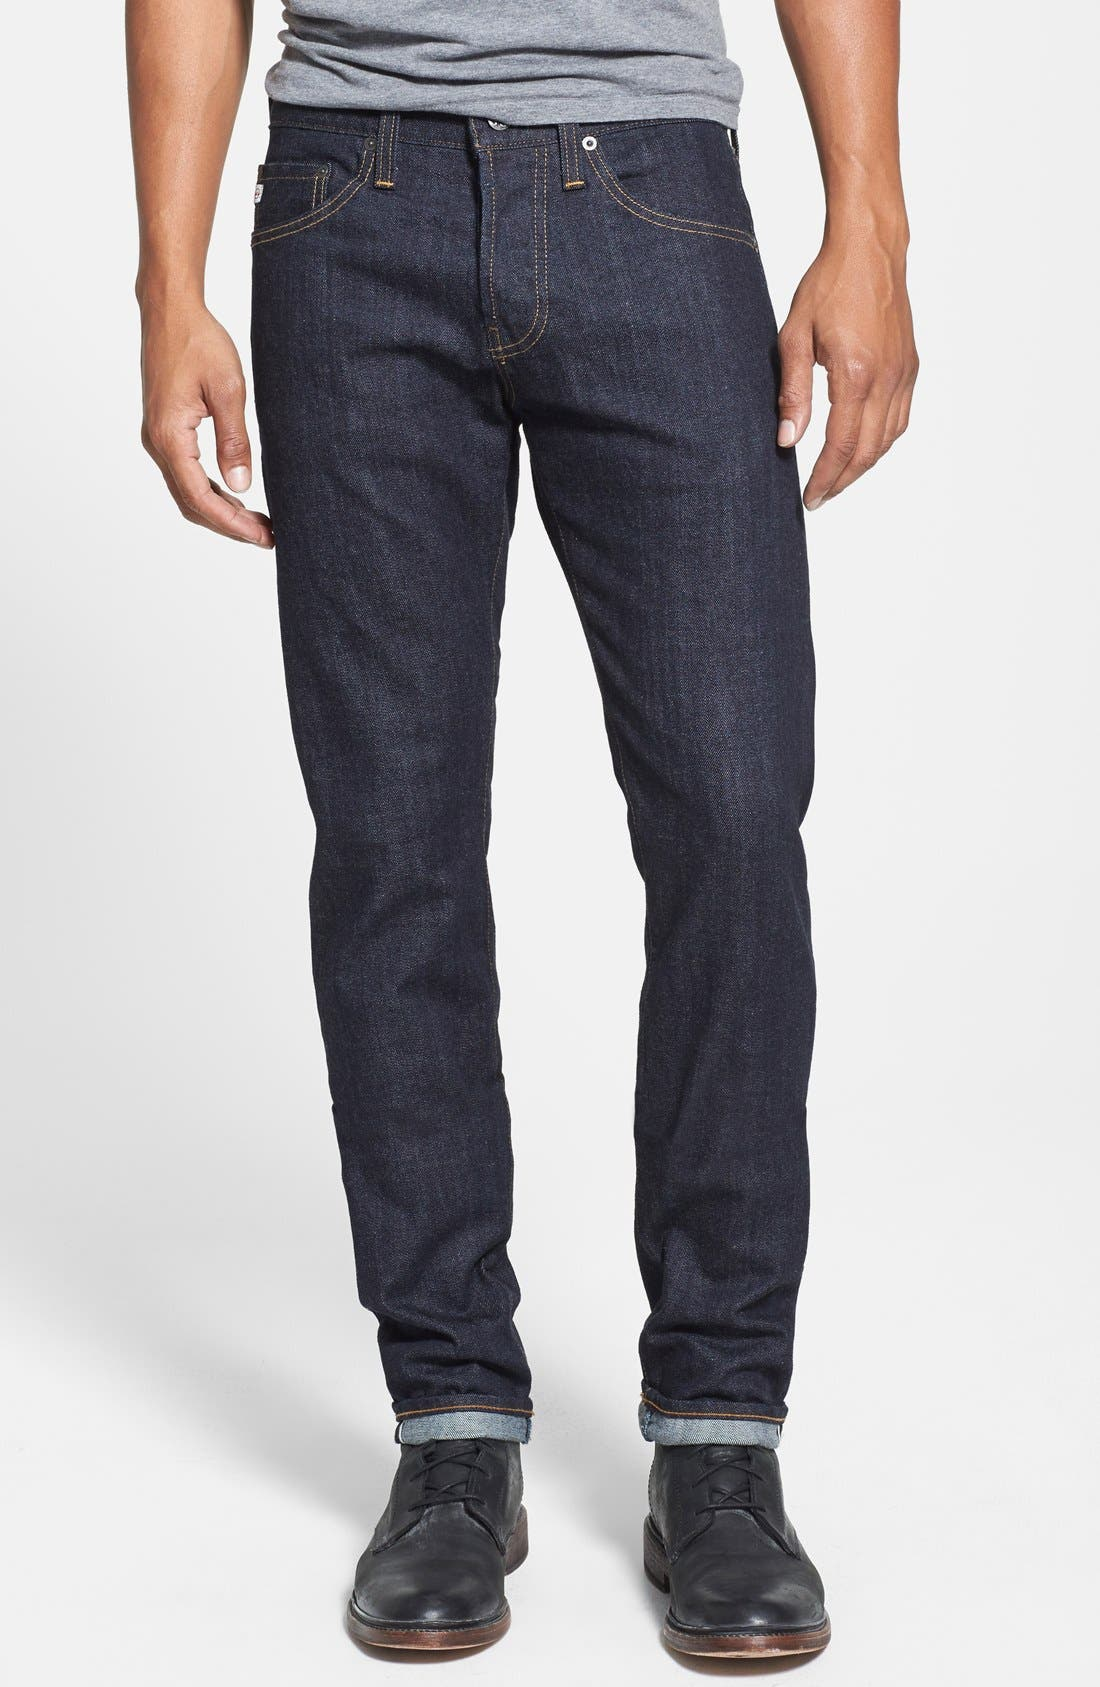 Alternate Image 1 Selected - AG 'Dylan' Skinny Fit Selvedge Jeans (Alpha)